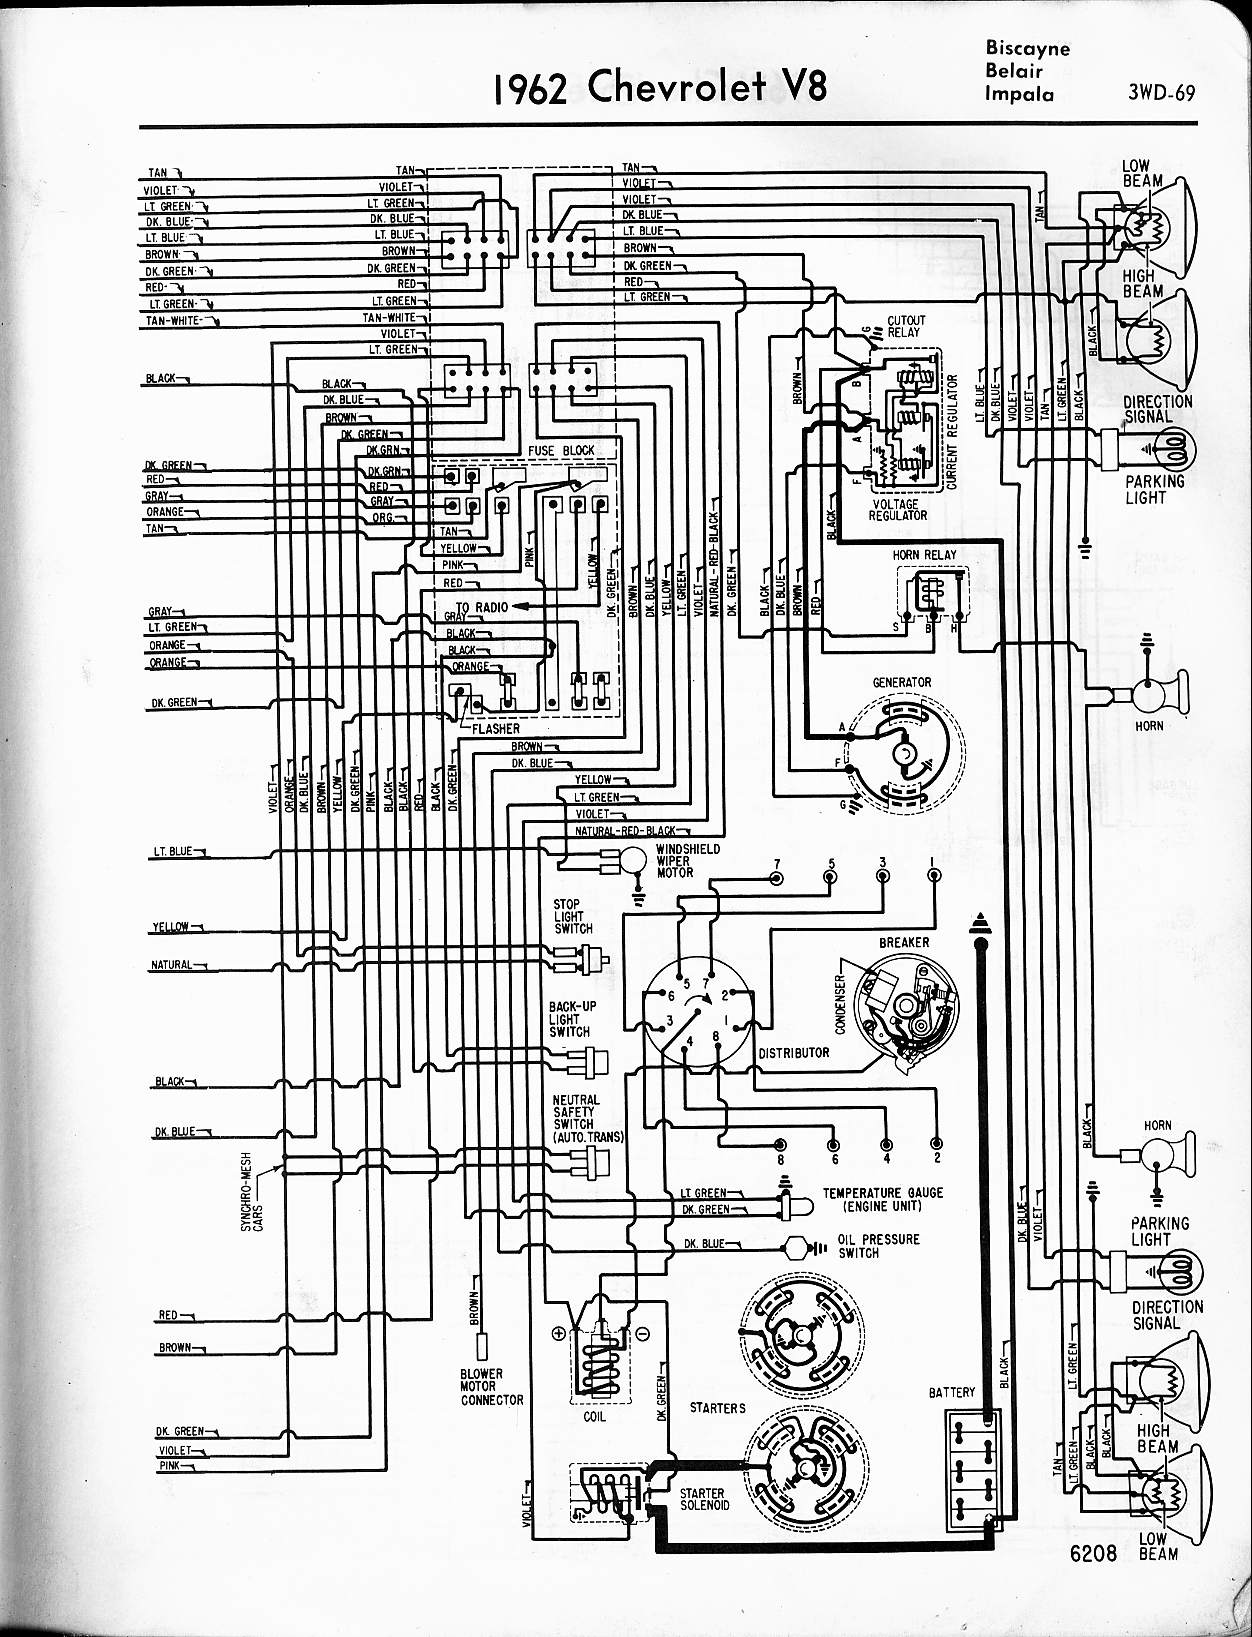 1962 c10 chevy truck wiring diagram wiring diagrams best 1965 chevrolet pickup wiring diagram wiring library 1974 chevy c10 wiring schematics 1962 c10 chevy truck wiring diagram